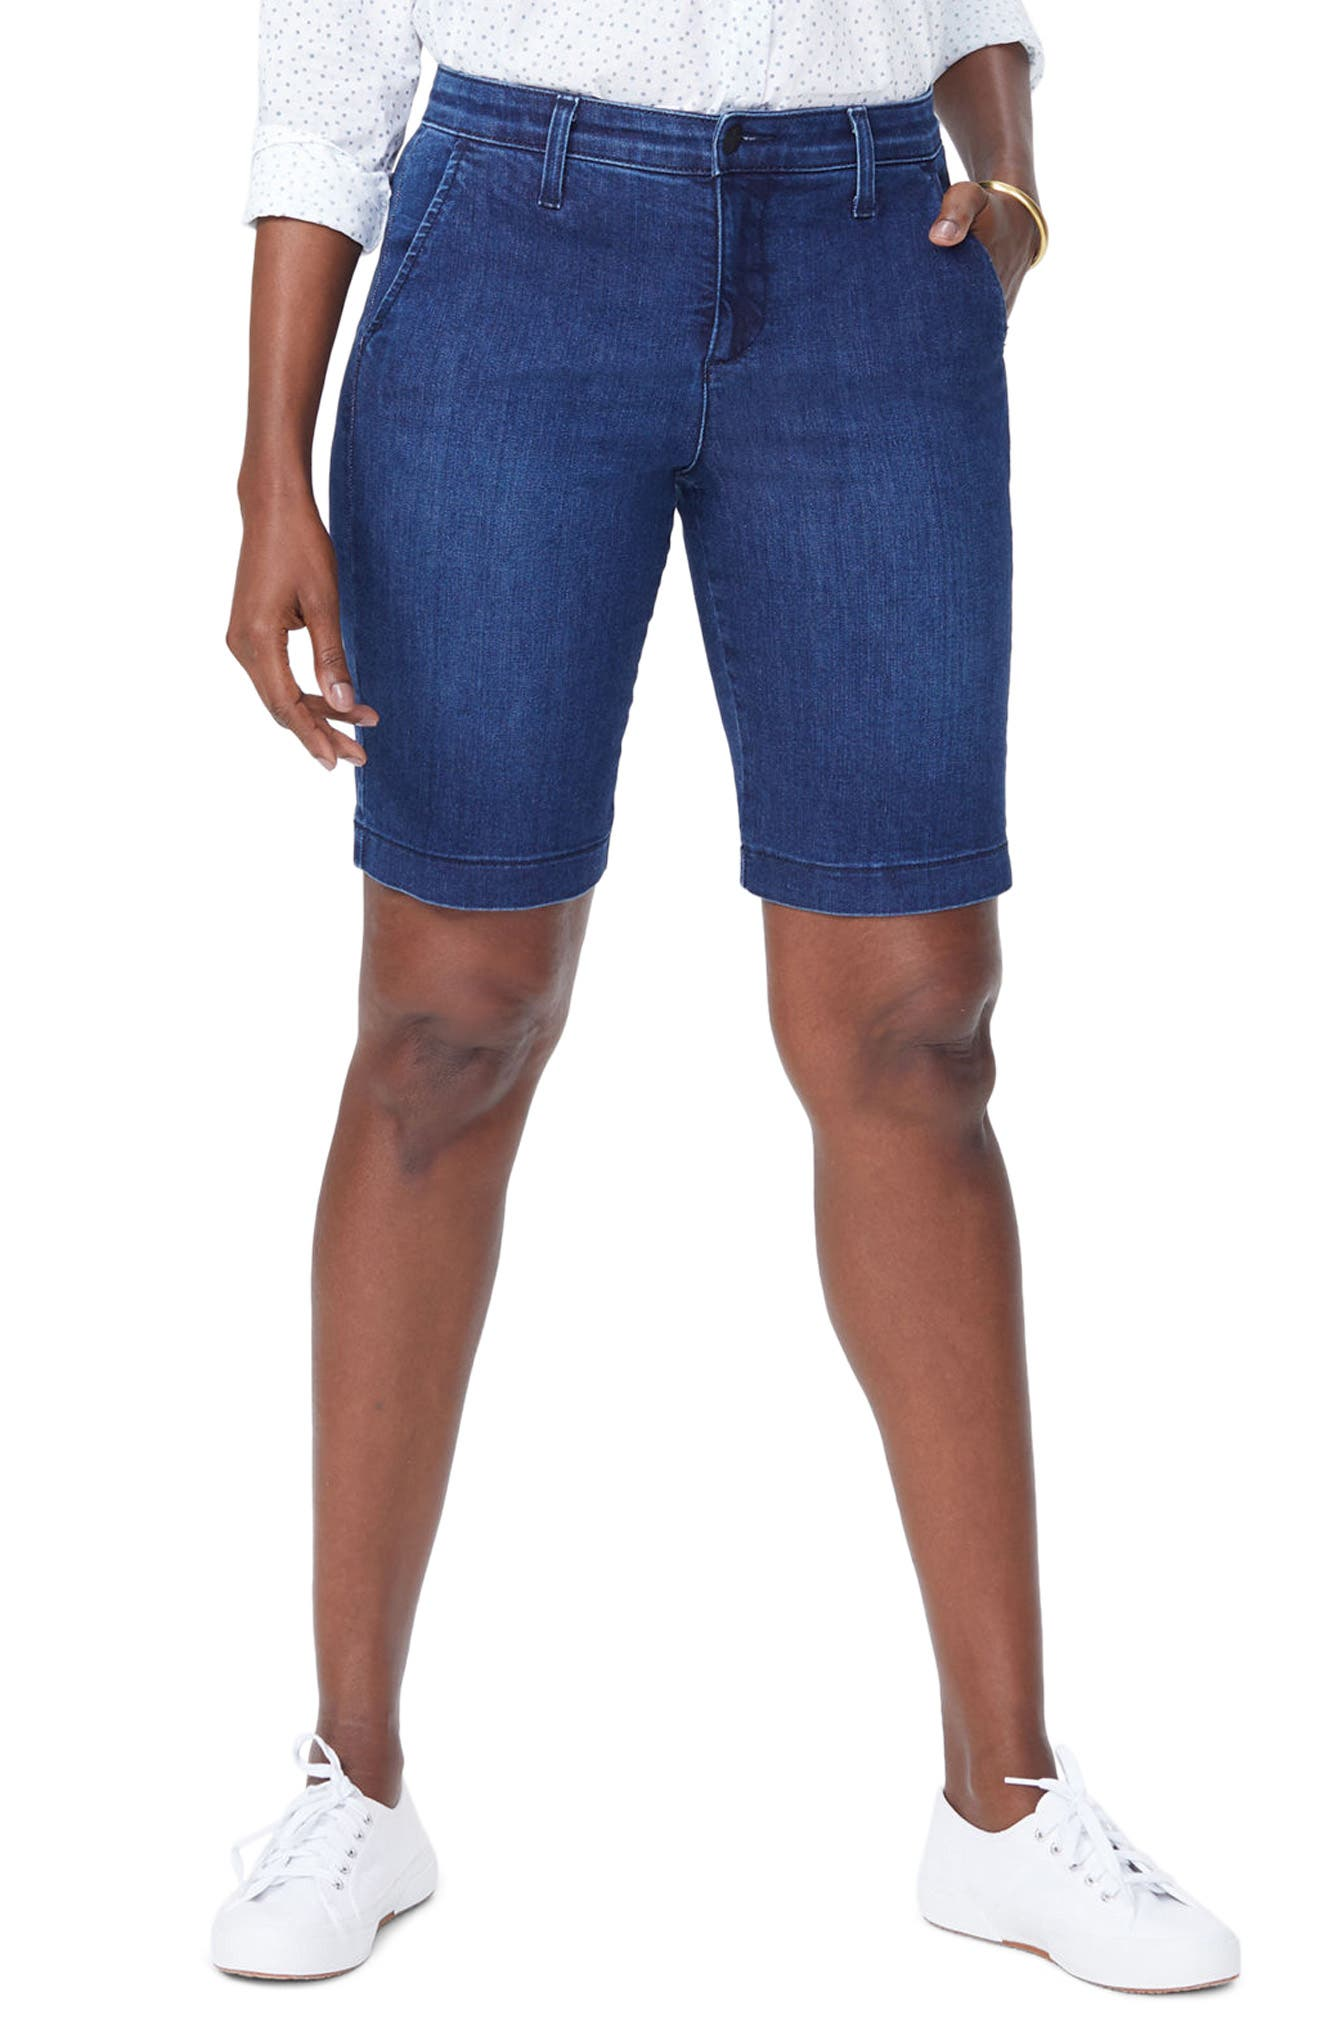 Marilyn Stretch Denim Bermuda Shorts,                             Main thumbnail 1, color,                             Cooper